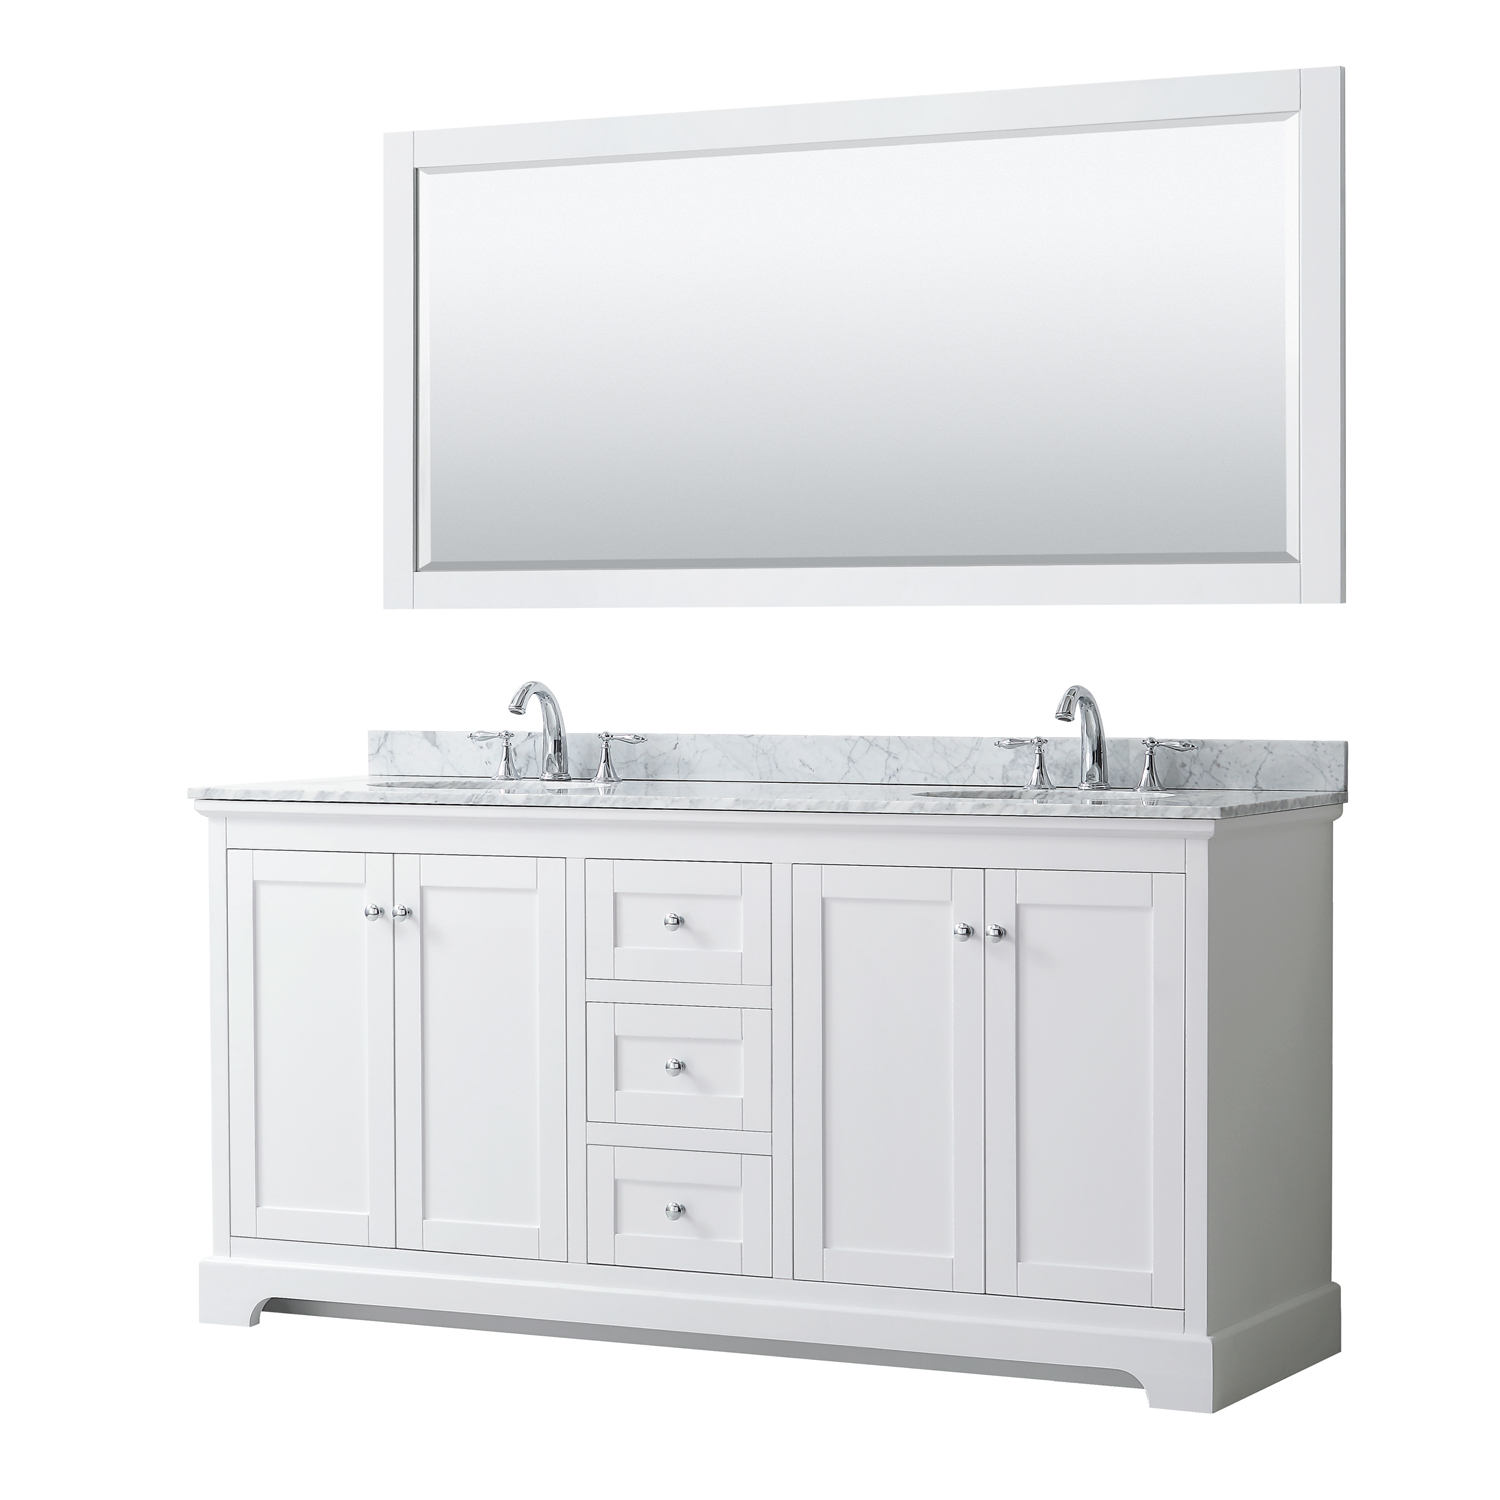 Avery 72 Double Bathroom Vanity By Wyndham Collection White Beautiful Bathroom Furniture For Every Home Wyndham Collection